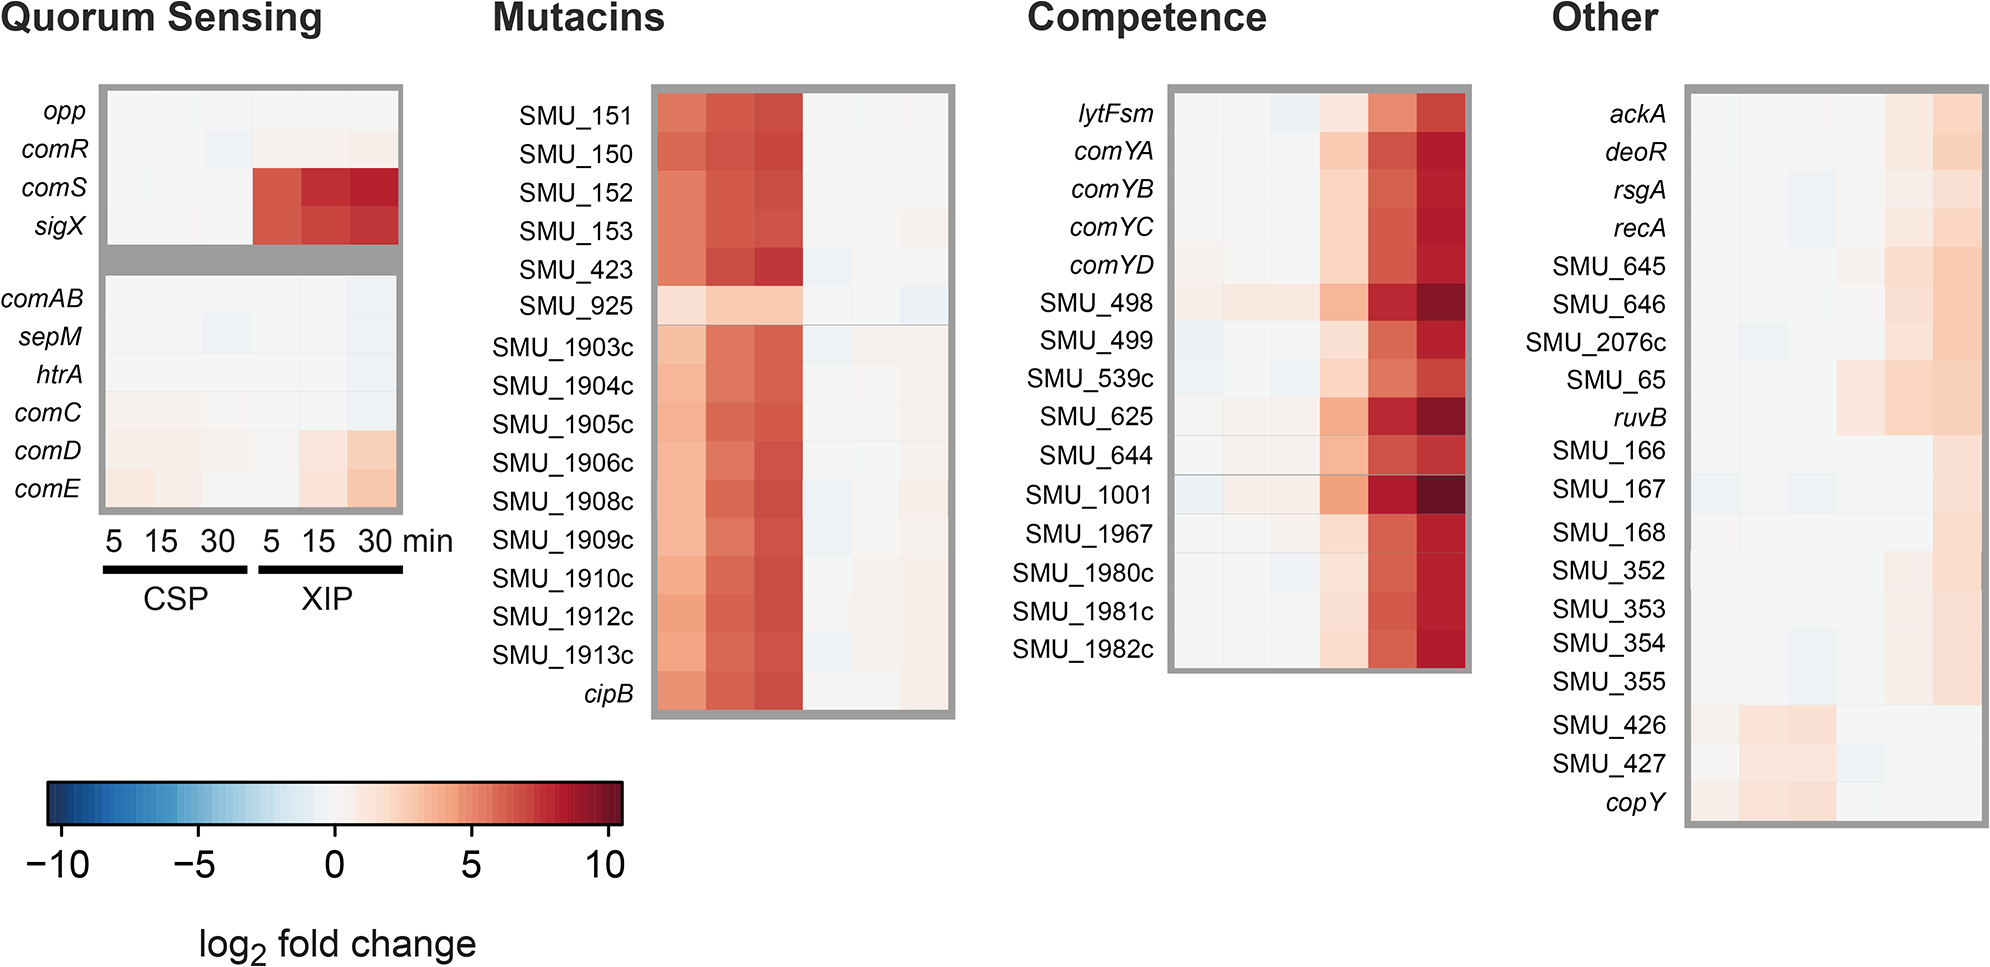 Time resolved transcriptome analysis of XIP and CSP induced <i>S. mutans</i> WT cultures in CDM.